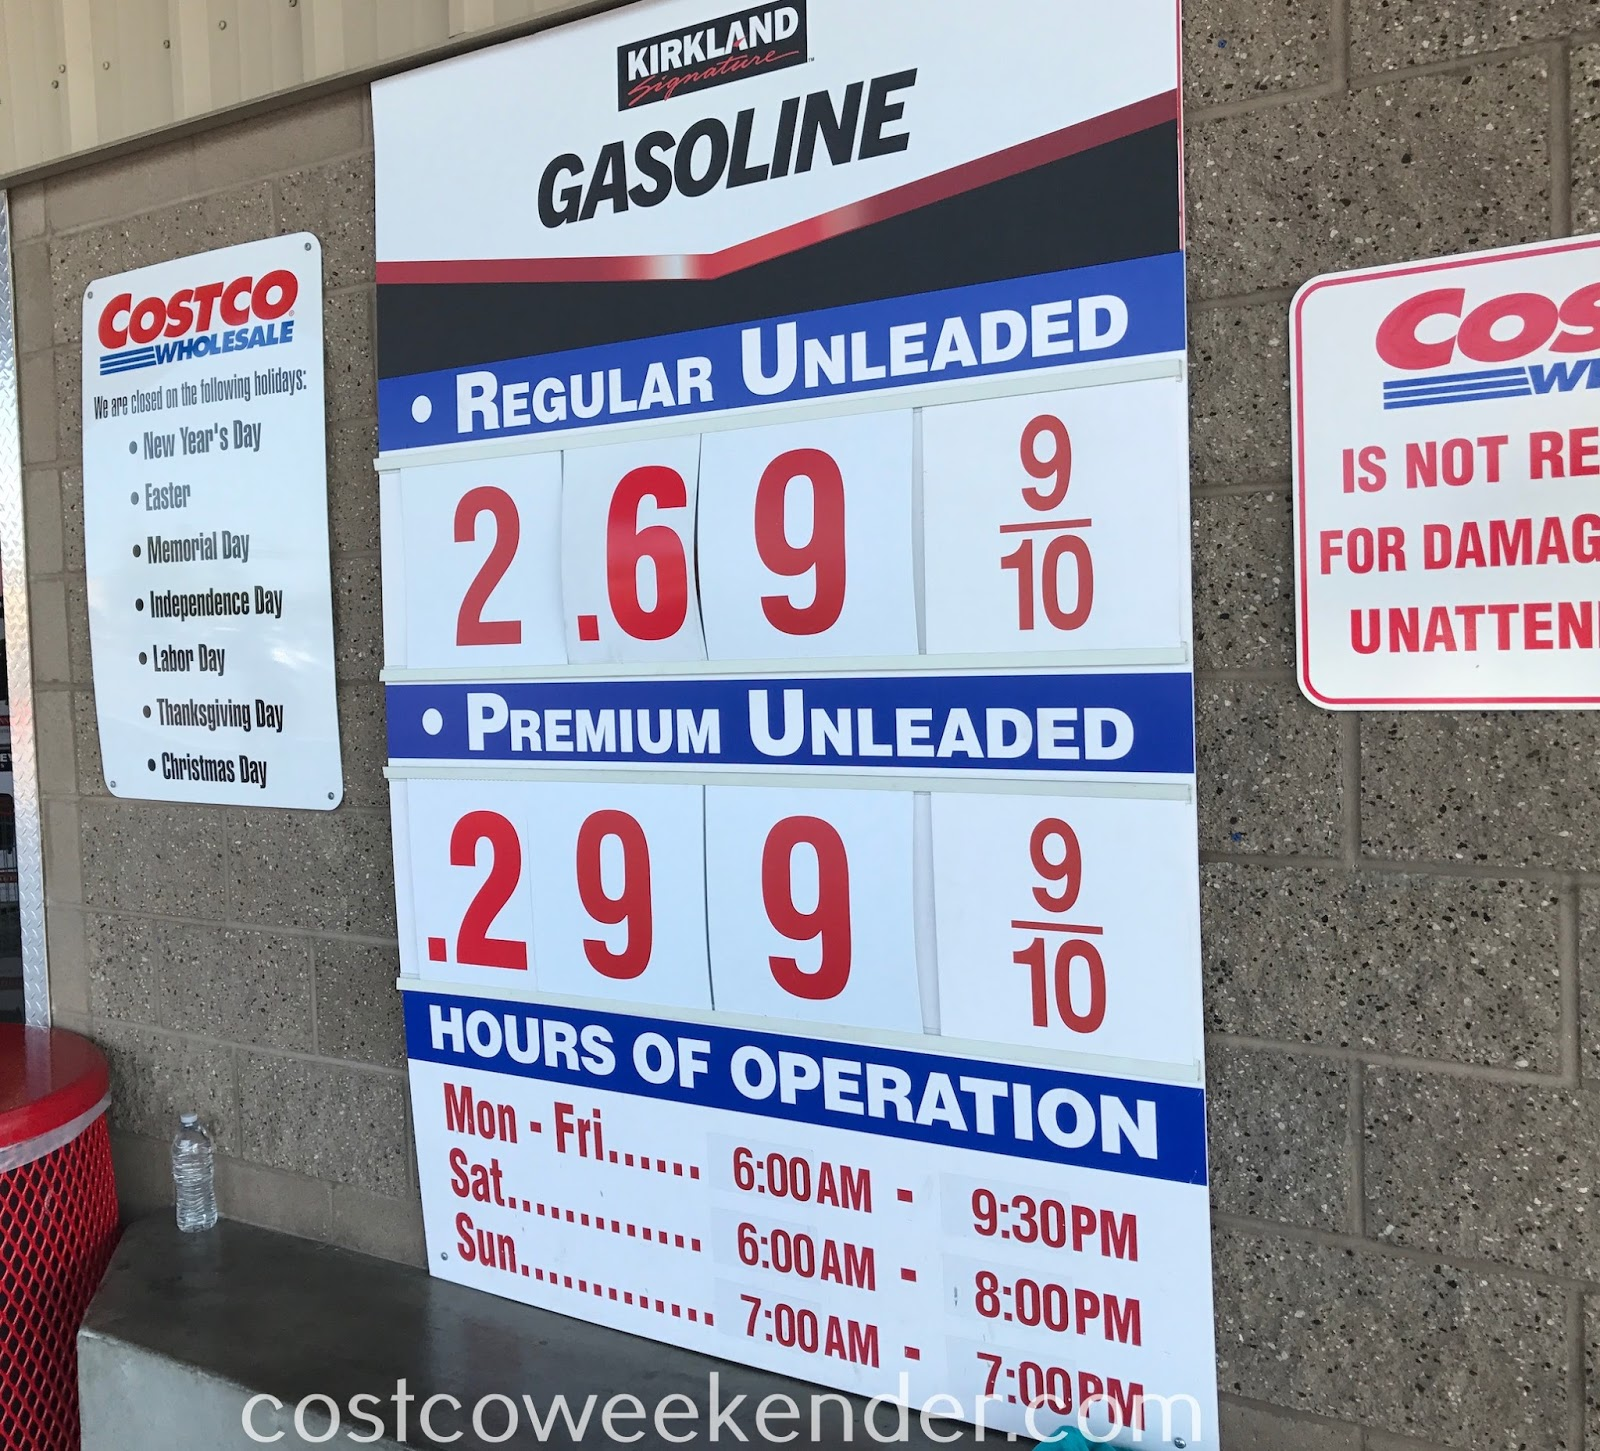 Costco gas for July p, 2017 at Redwood City, CA